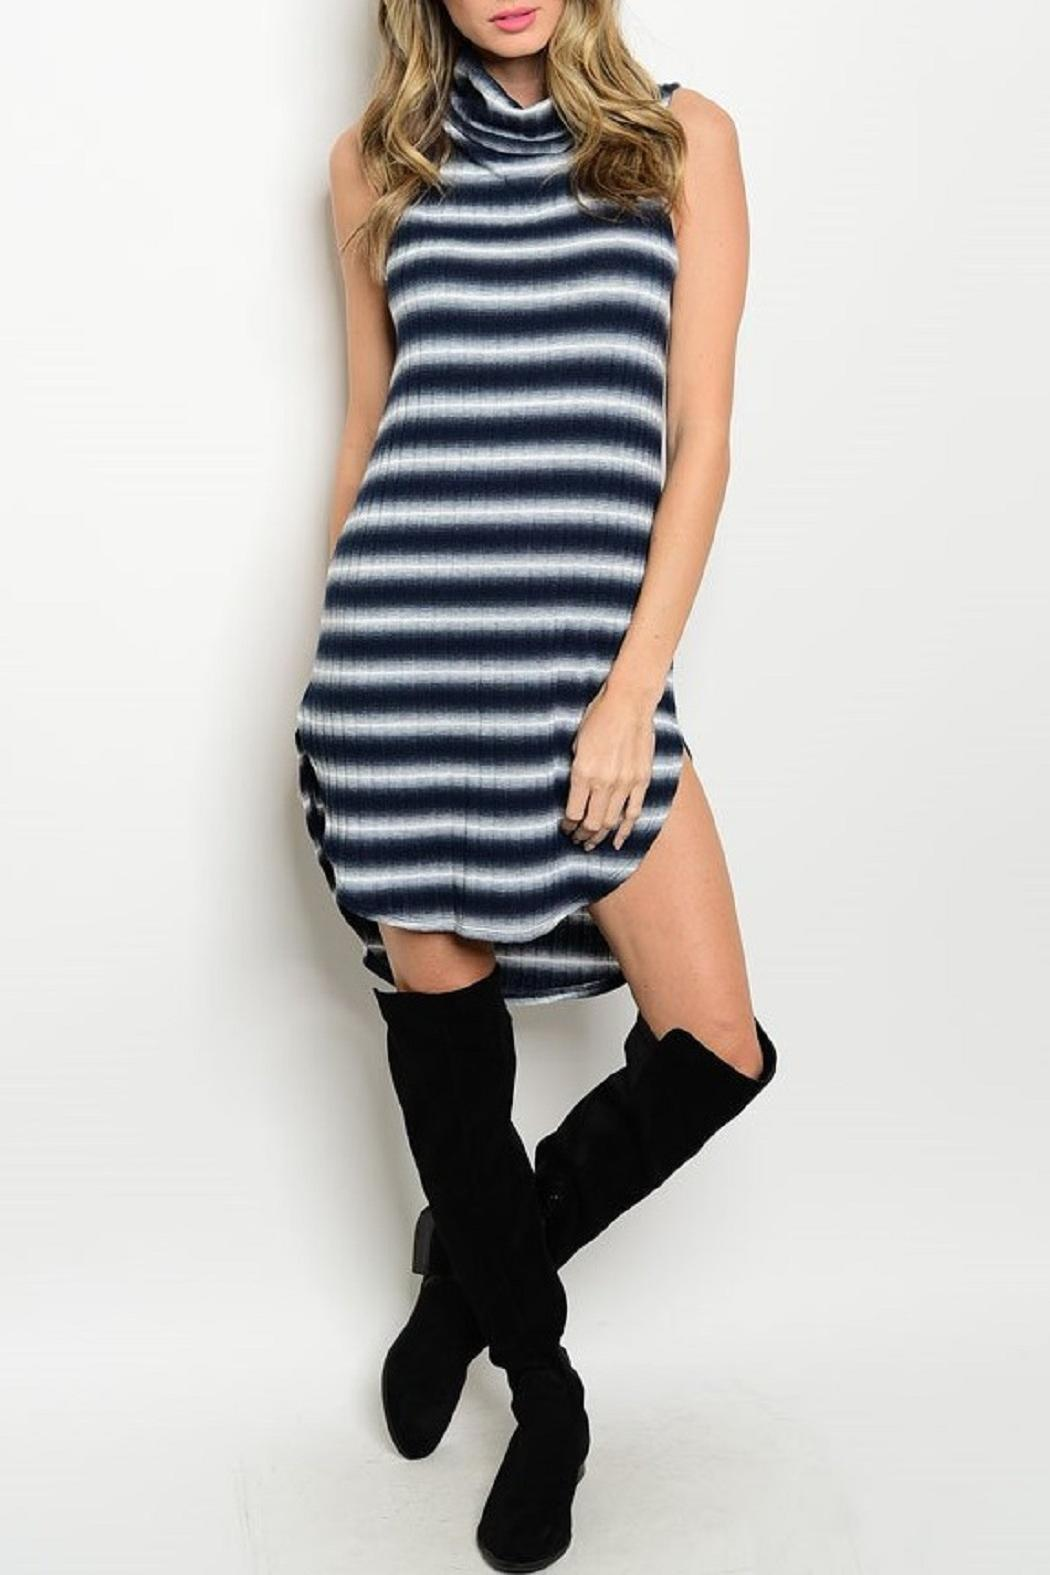 Adore Clothes & More Navy White Striped Dress - Main Image